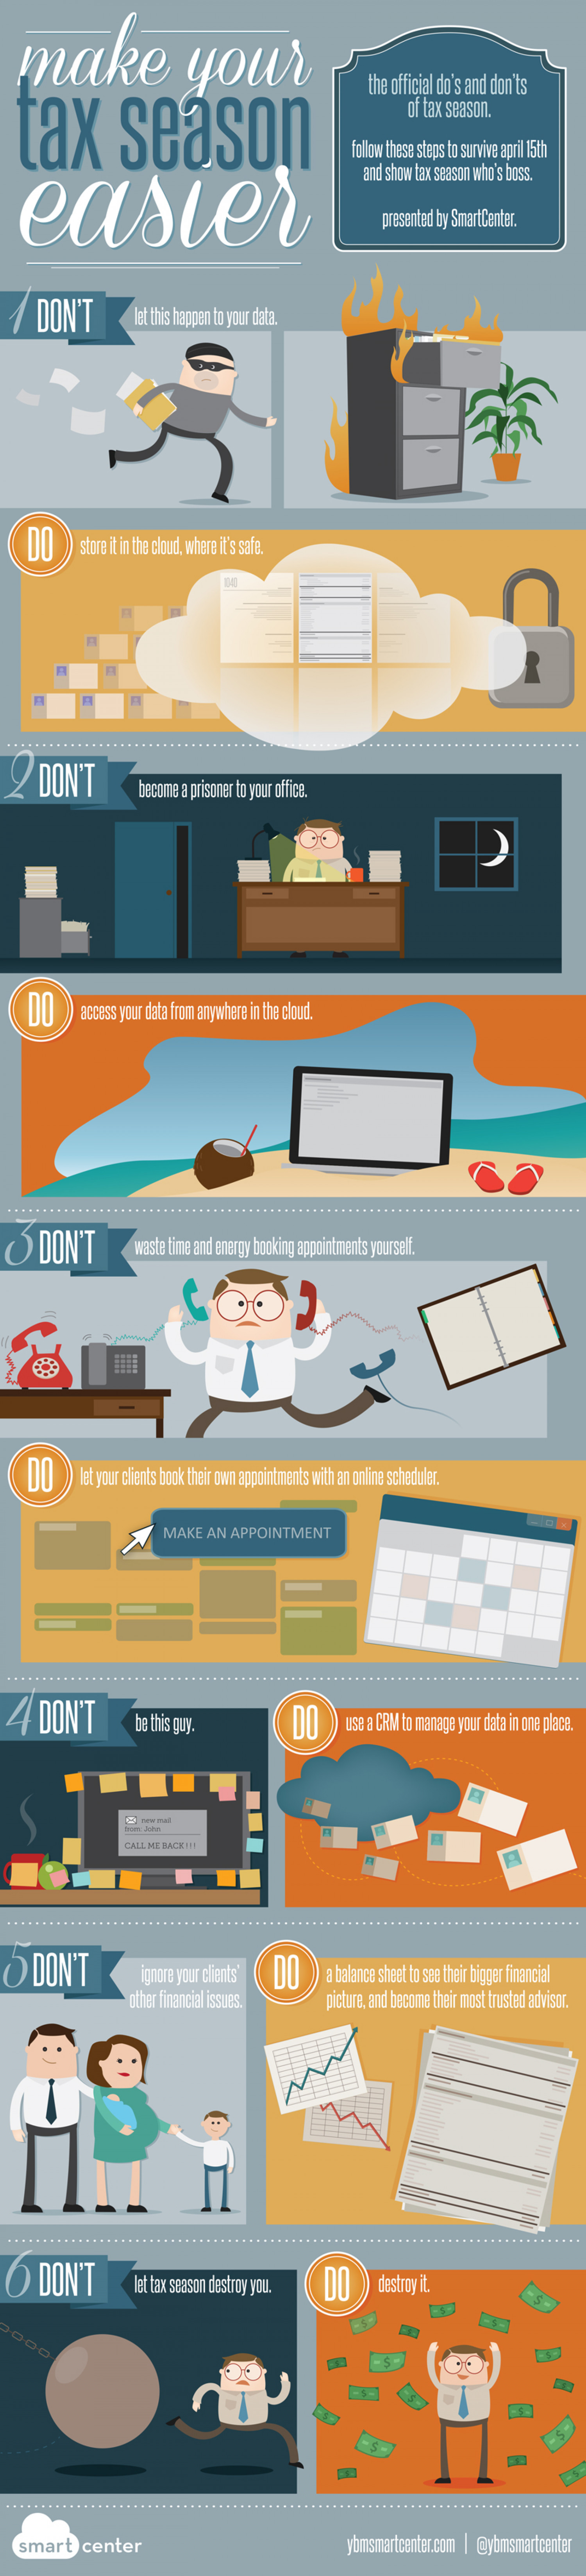 Make Your Tax Season Easier Infographic